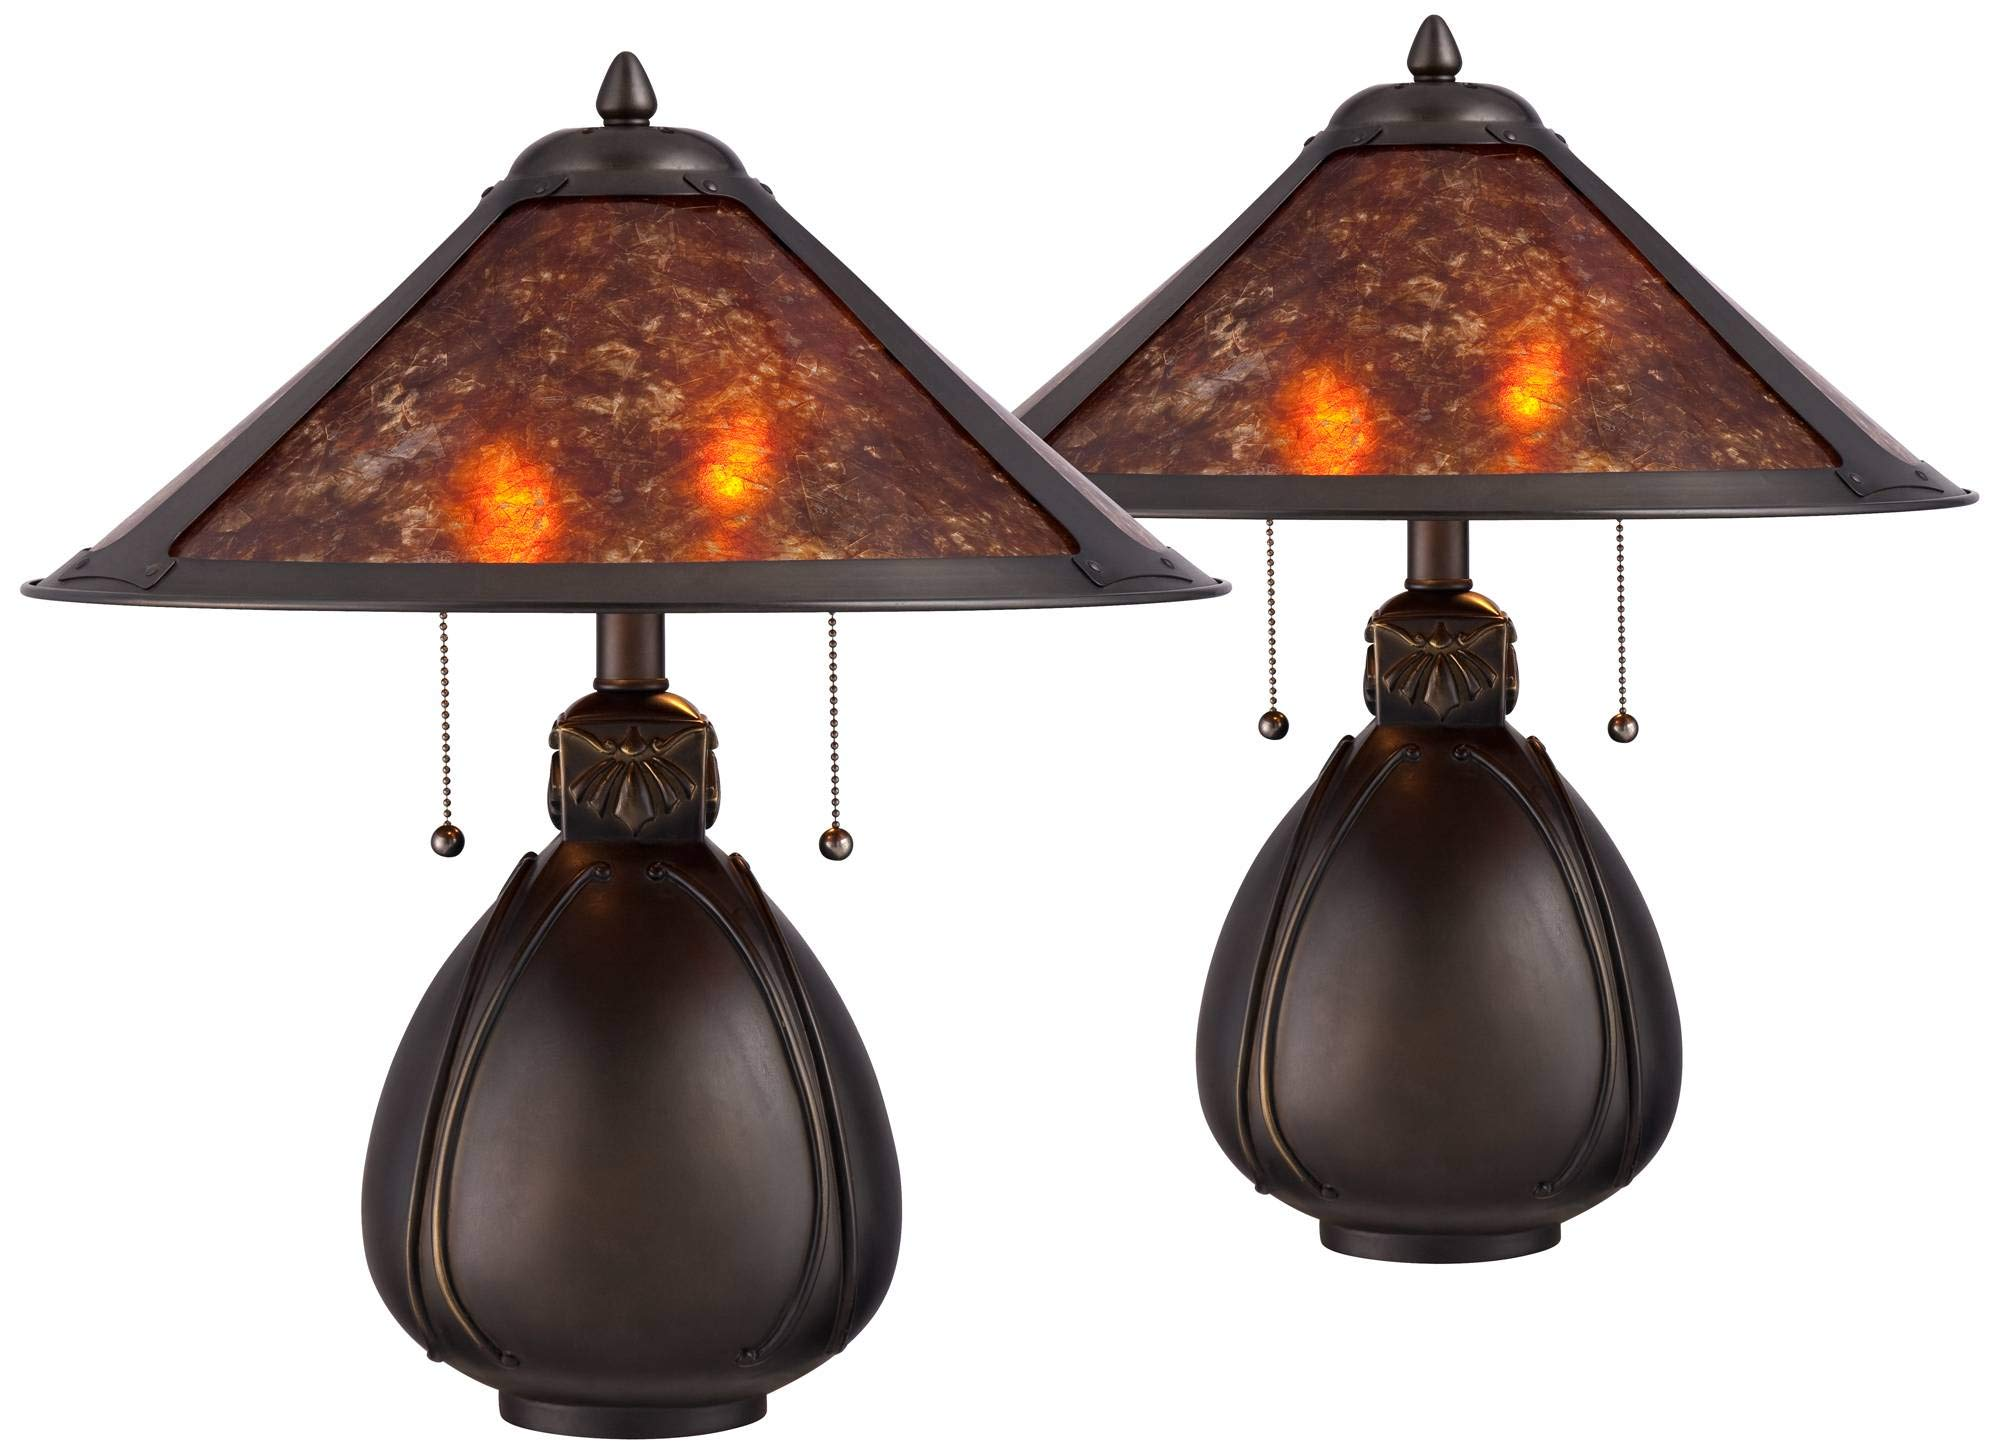 Nell Traditional Accent Table Lamps 19'' High Set of 2 Bronze Pottery Natural Mica Shade for Bedroom Bedside Office - Robert Louis Tiffany